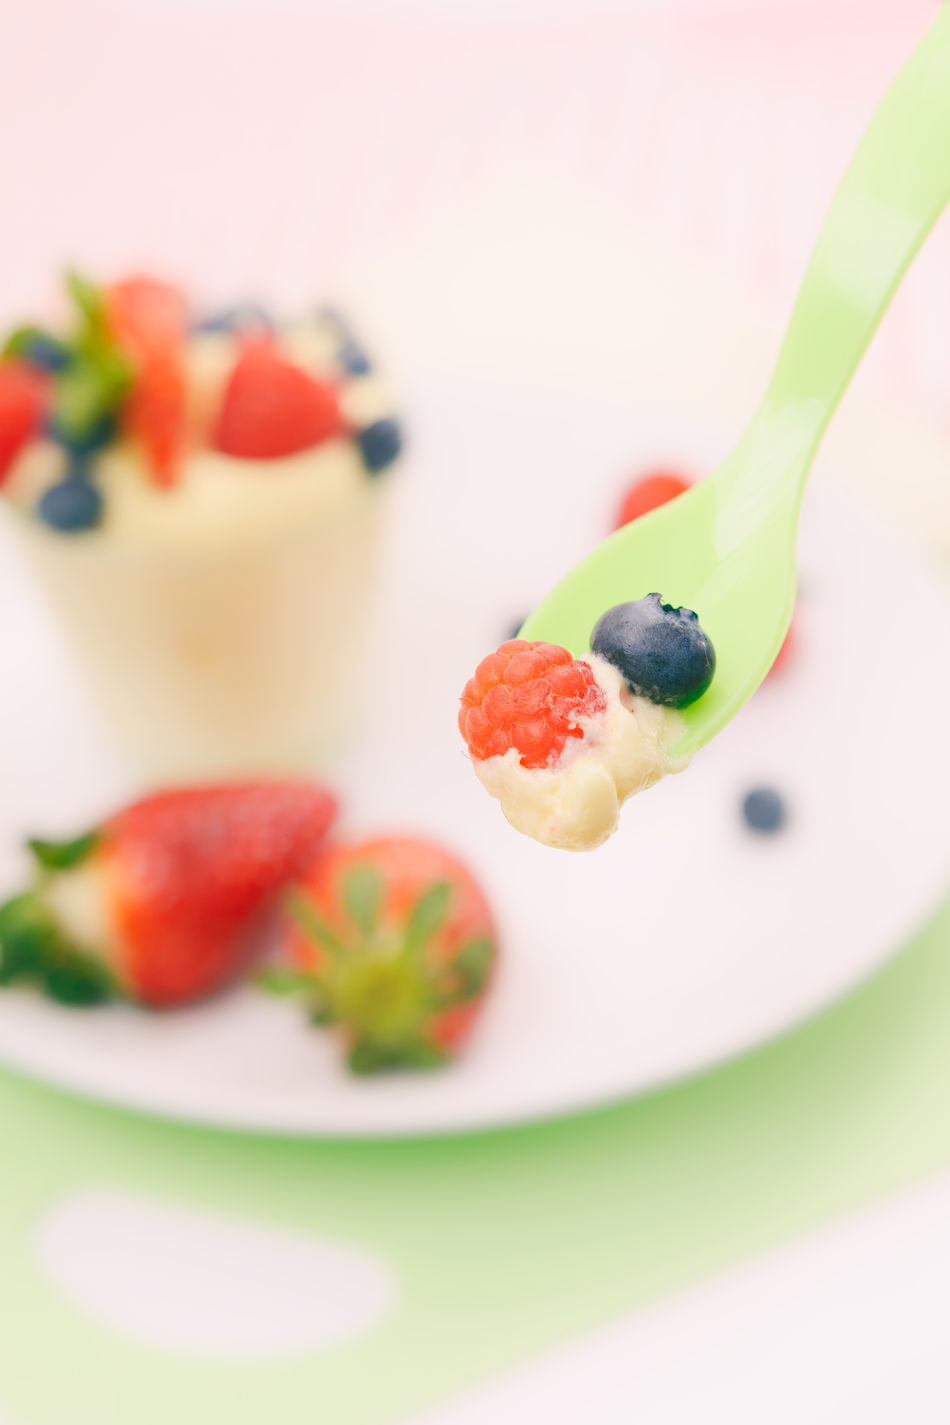 Baby spoon coming at the viewer from an angle filled with fresh and healthy raspberries, strawberries and blueberries. Artful And Beautiful Baby Food Blueberries Close-up Coming At Viewer From An Angle Delicious Colorful Food Female Audience Food Food And Drink Food For Babies Fresh And Healthy, Freshness Fruit Fun And Colorful But Elegant Healthy Eating Healthy Living Highkey Indoors  Mother And Child Pastel Colors Raspberries Ready-to-eat Selective Focus Sophisticated Adult Strawberry